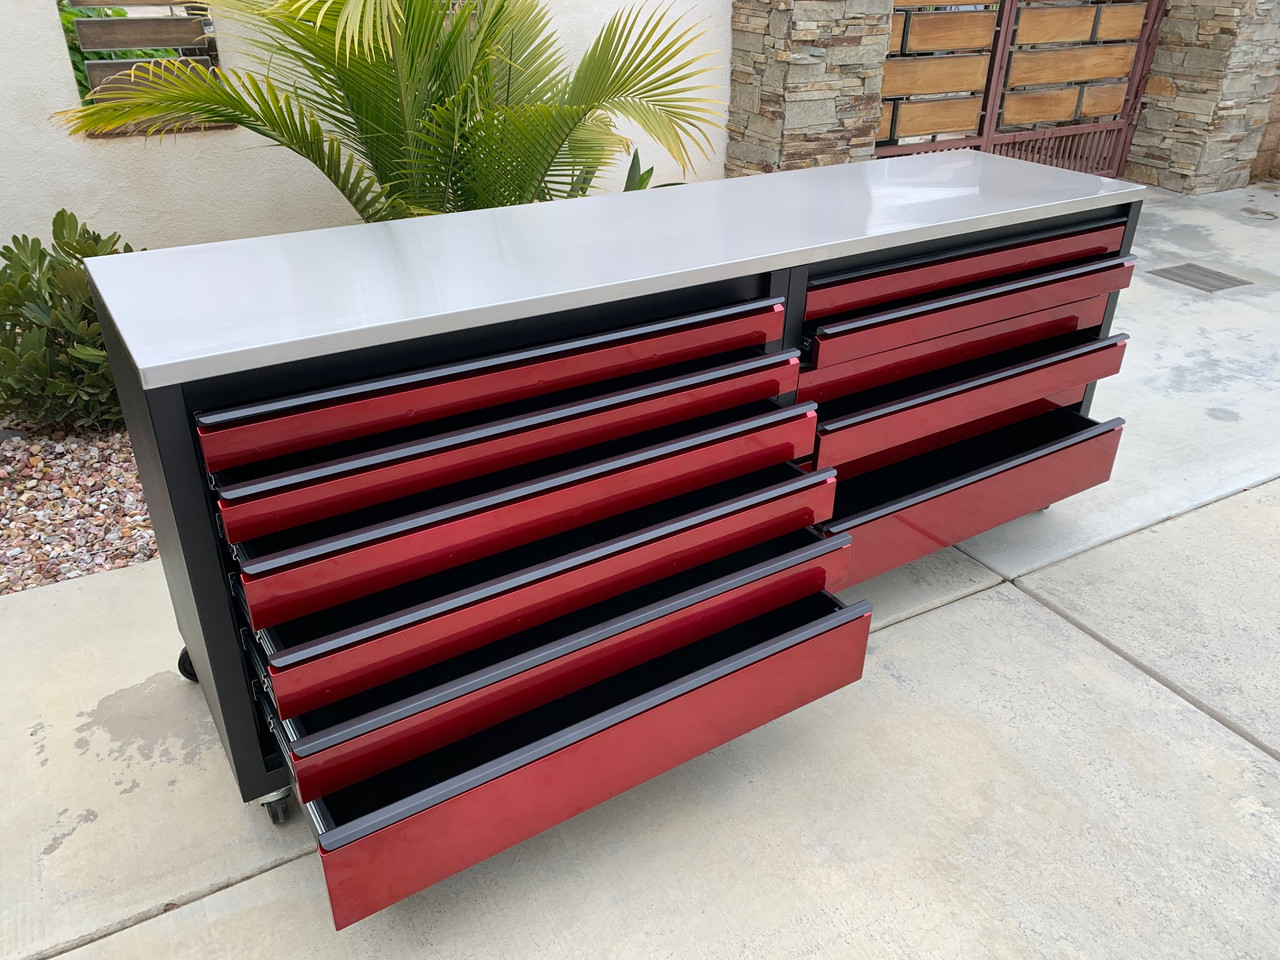 Premier 8' Base Cabinet with Drawers